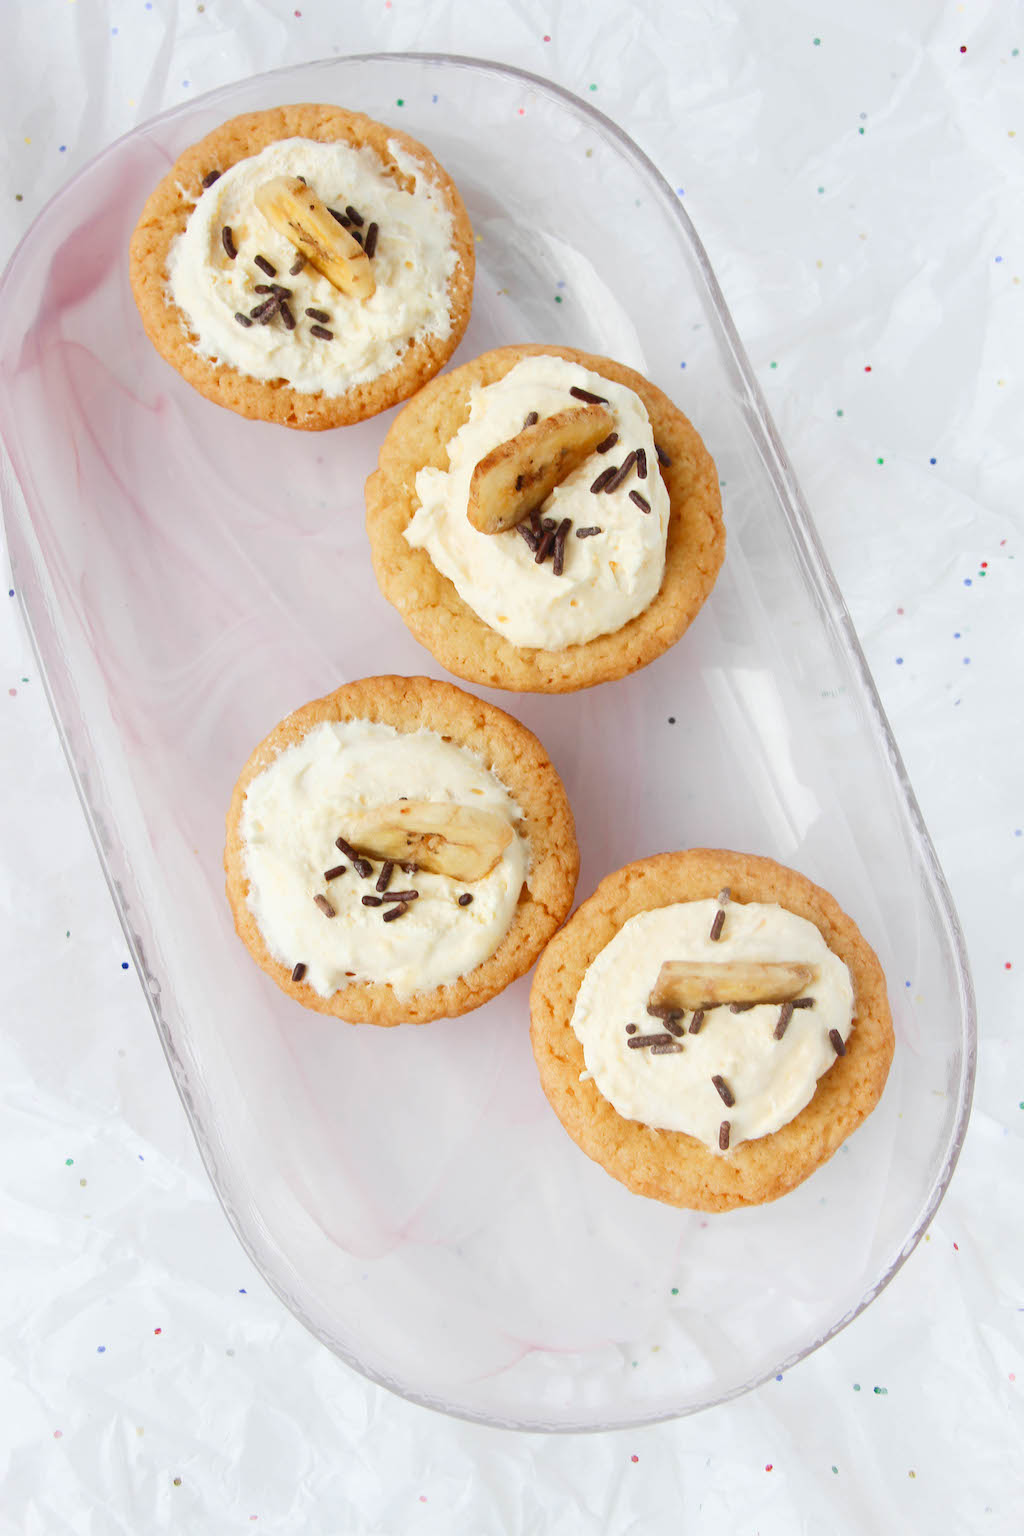 Mini cream pie recipes are always fun but a blend of banana cream and sugar cookies all rolled into an easy bite sized Banana Cream Cookie Cups recipe makes it even better.